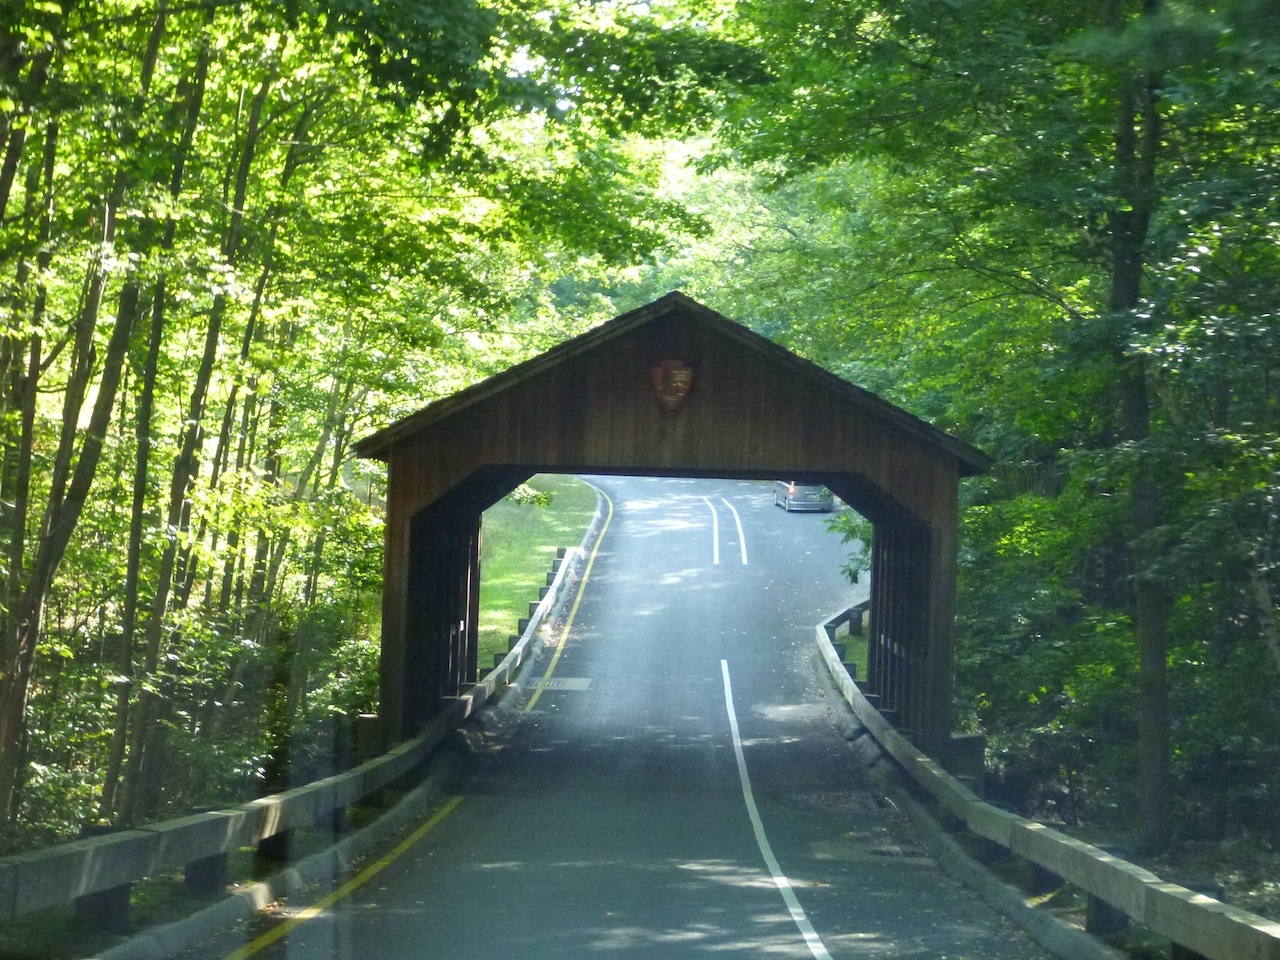 The Covered Bridge In The Pierce Stocking Scenic Drive